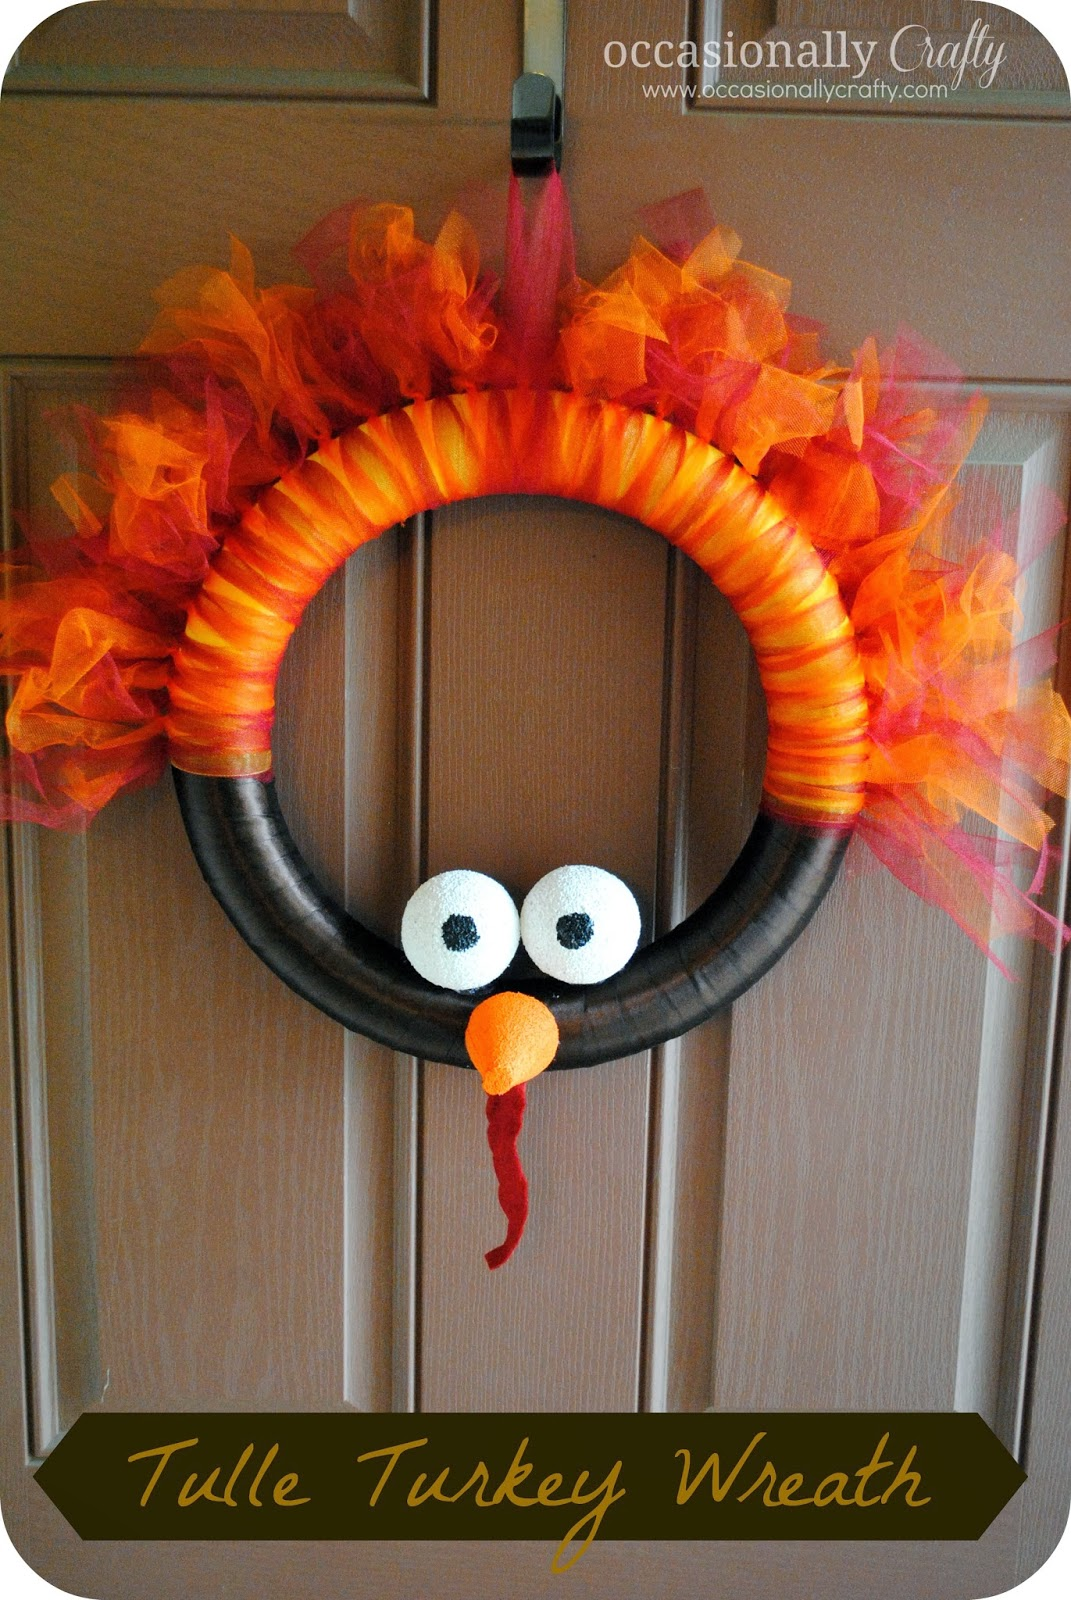 tulle turkey wreath occasionally crafty tulle turkey wreath. Black Bedroom Furniture Sets. Home Design Ideas